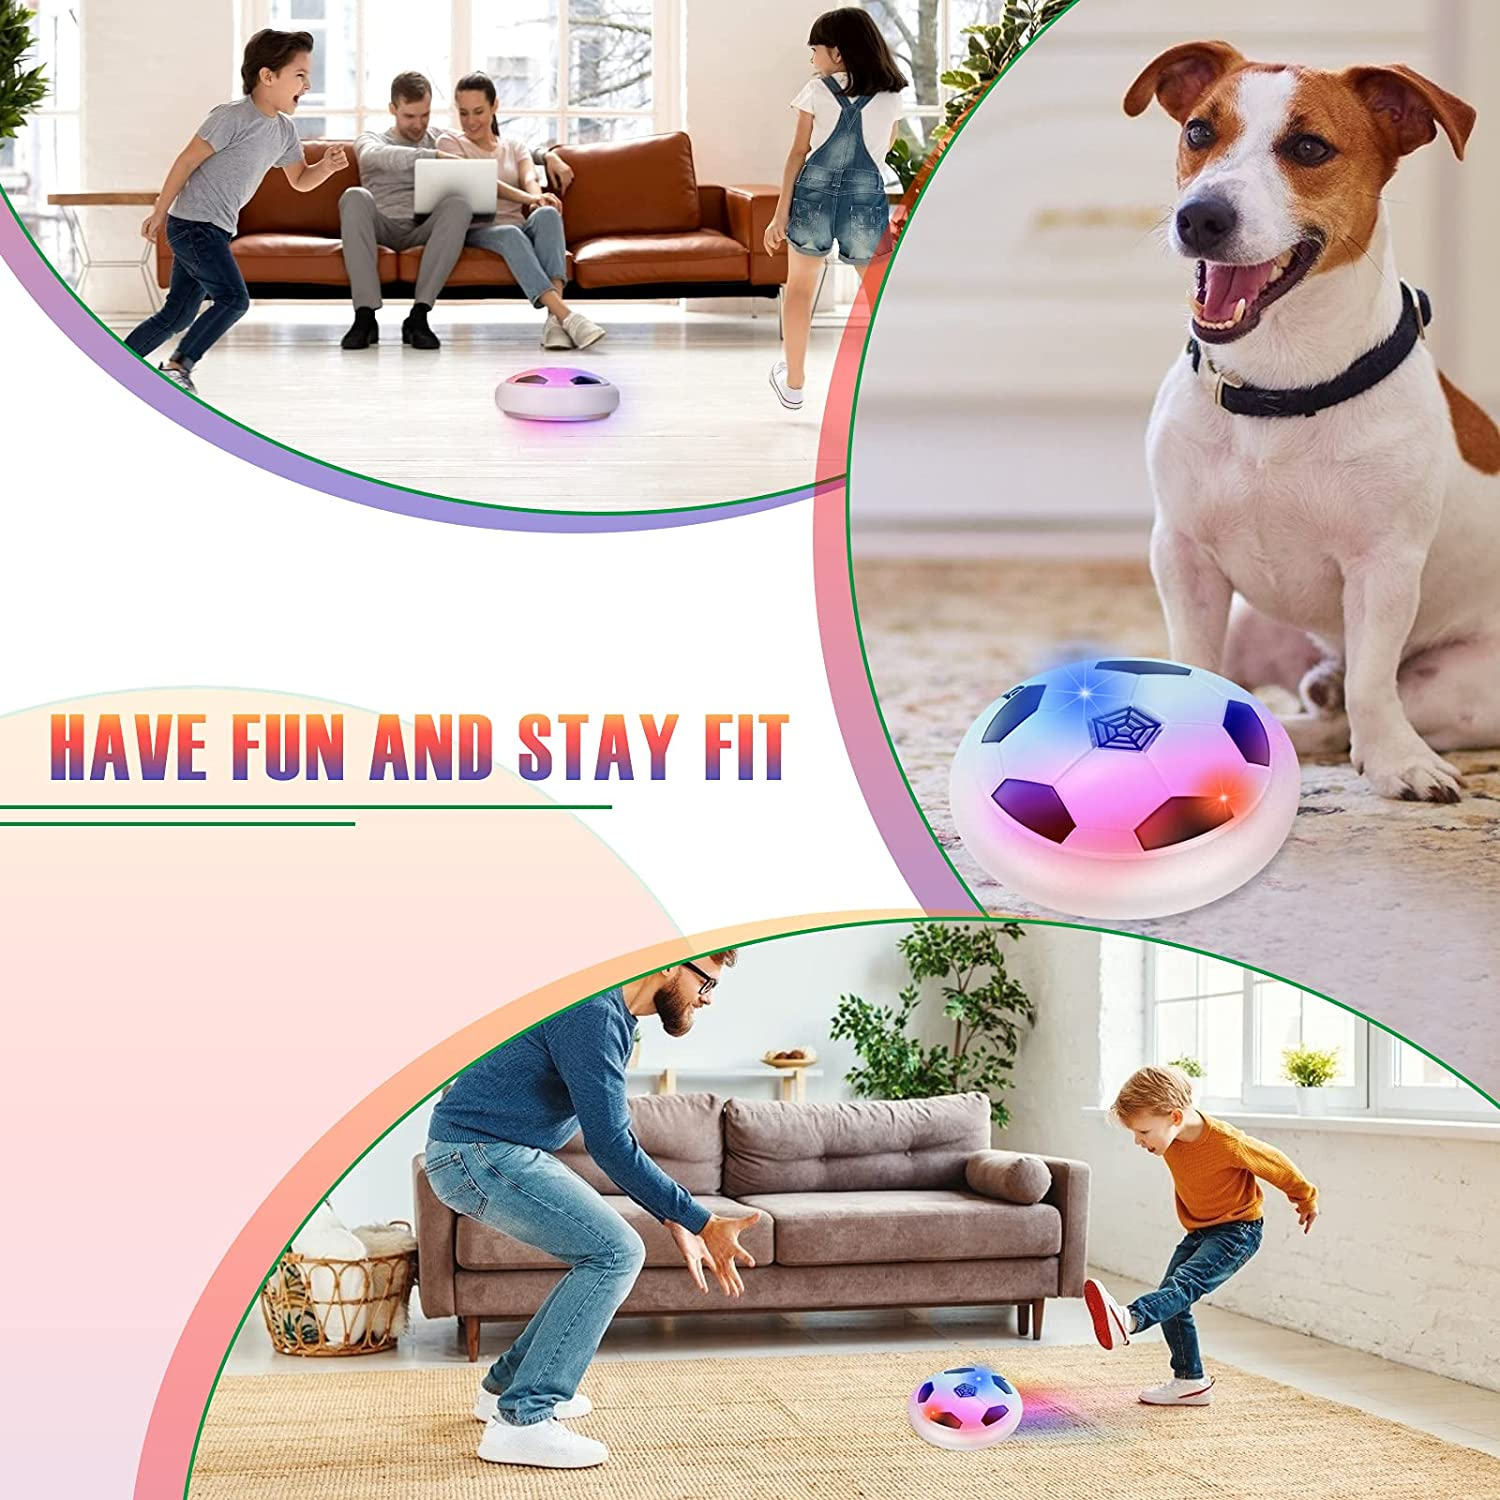 Dolanus Boy Toys for Hover Soccer Ball LED Lights and Soft Foam Bumpers Kids Toy Gifts